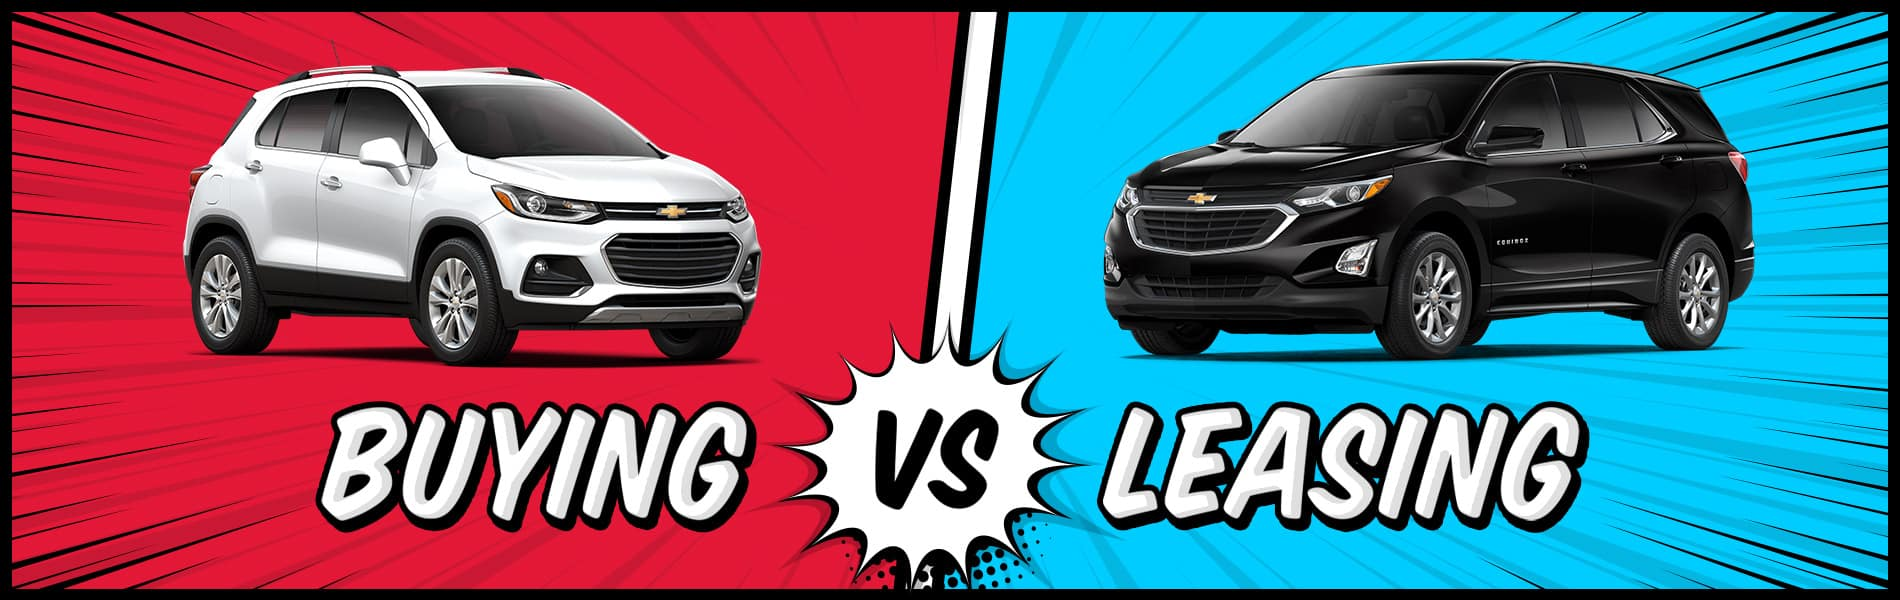 Deciding Whether to Buy or Lease a Vehicle in Delaware, Ohio